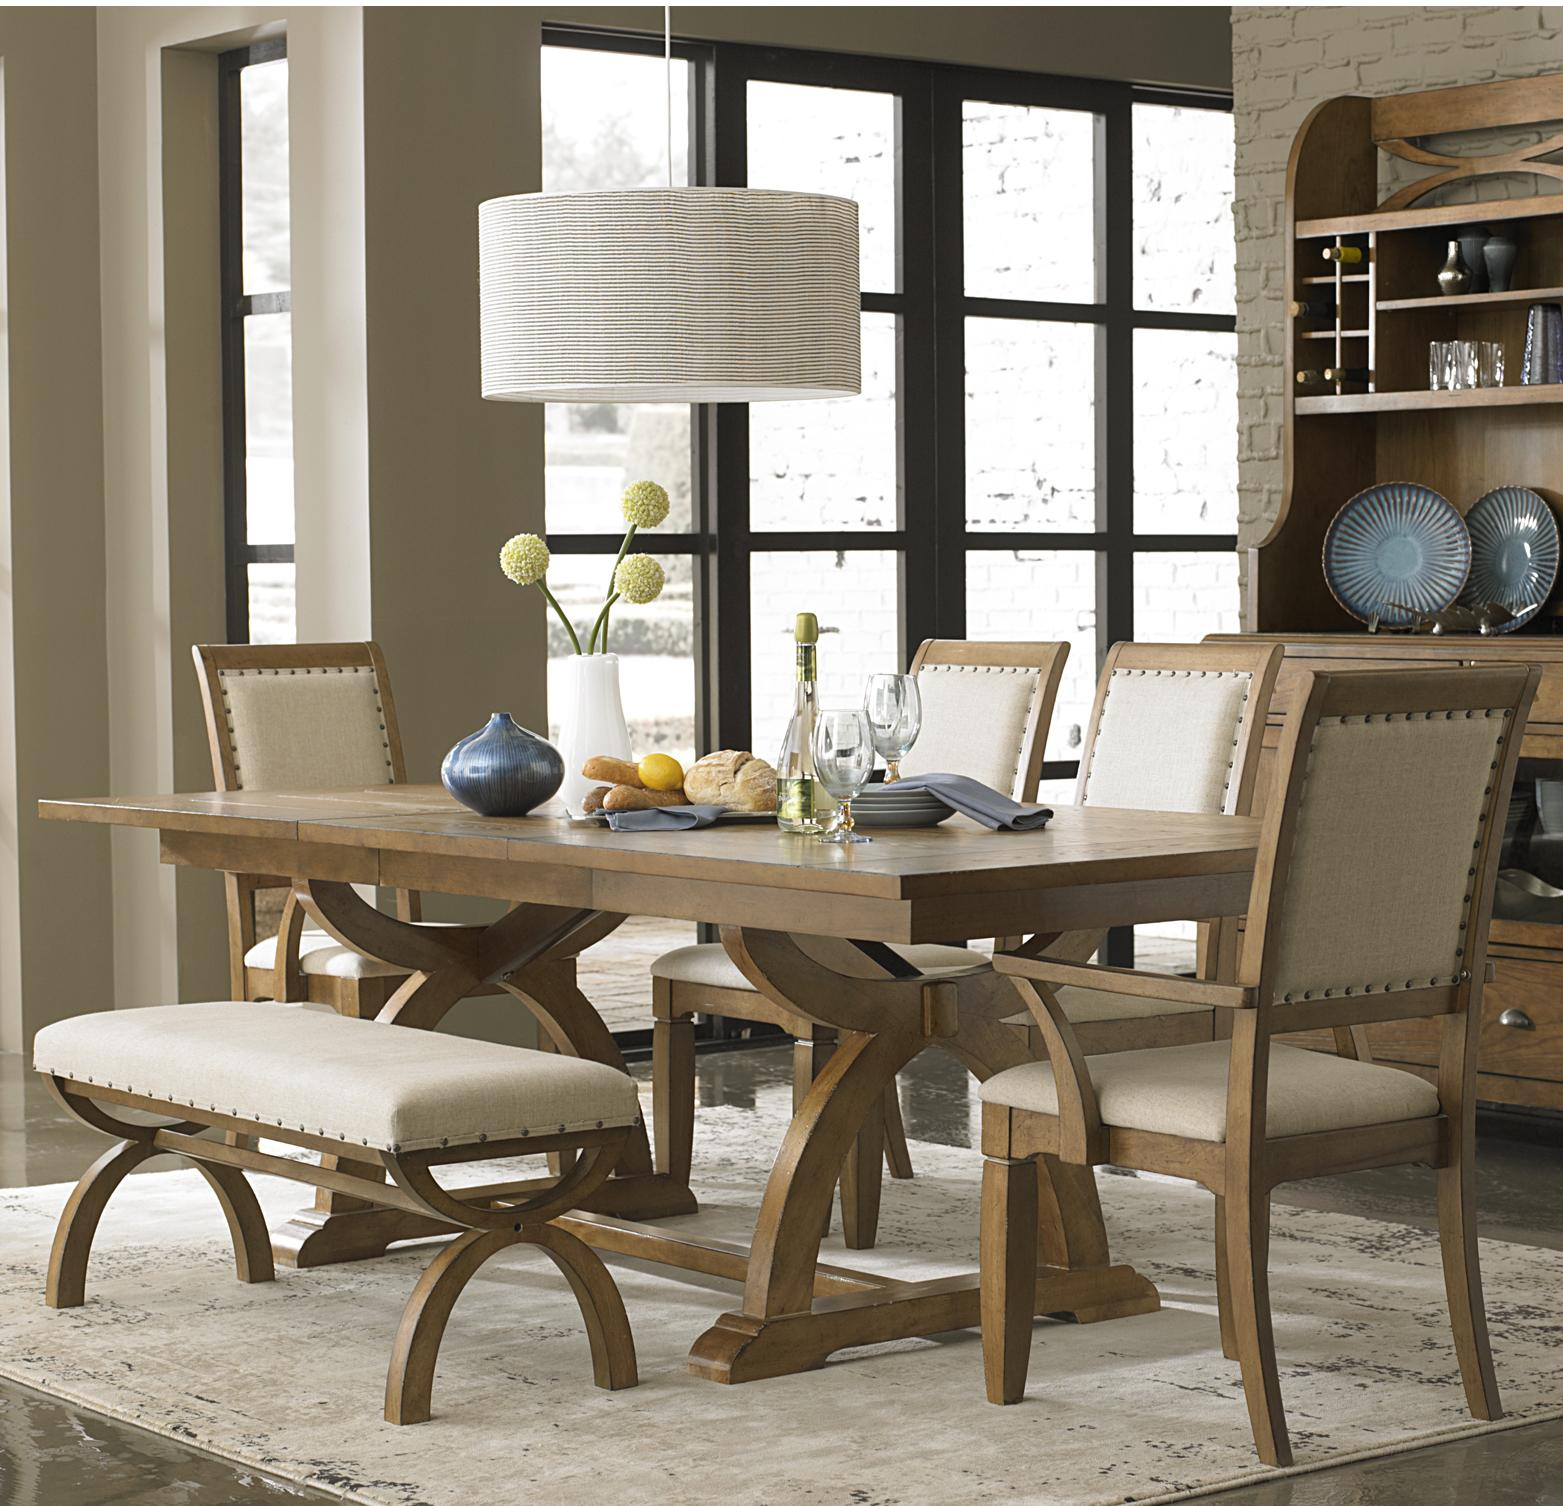 Nice 6 Piece Trestle Table Set With 4 Upholstered Chairs U0026 Dining Bench